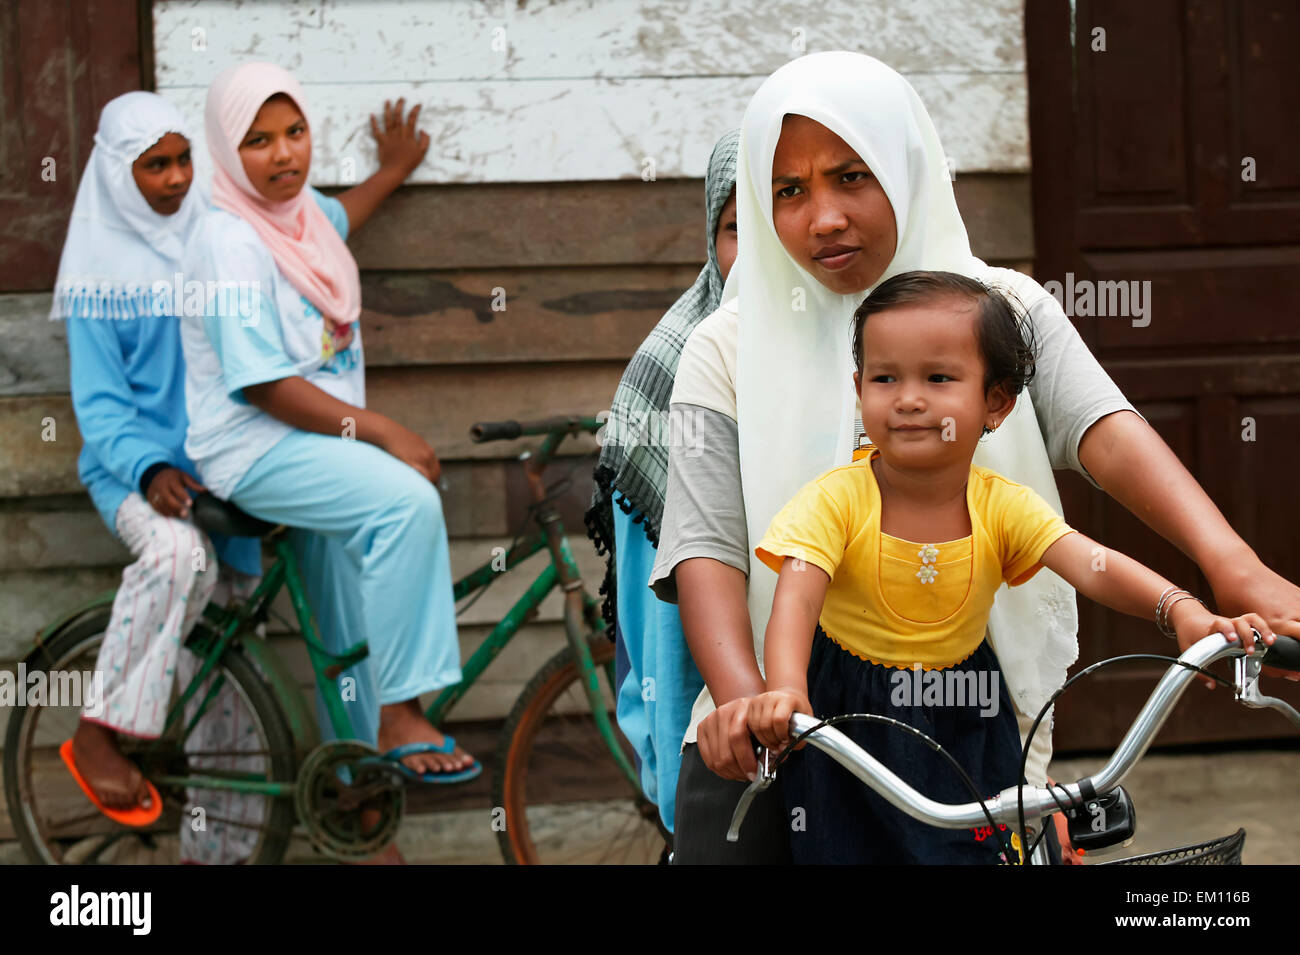 Muslim girls in headscarves play on bicycles; Banda Aceh, Aceh Province, Sumatra, Indonesia Stock Photo